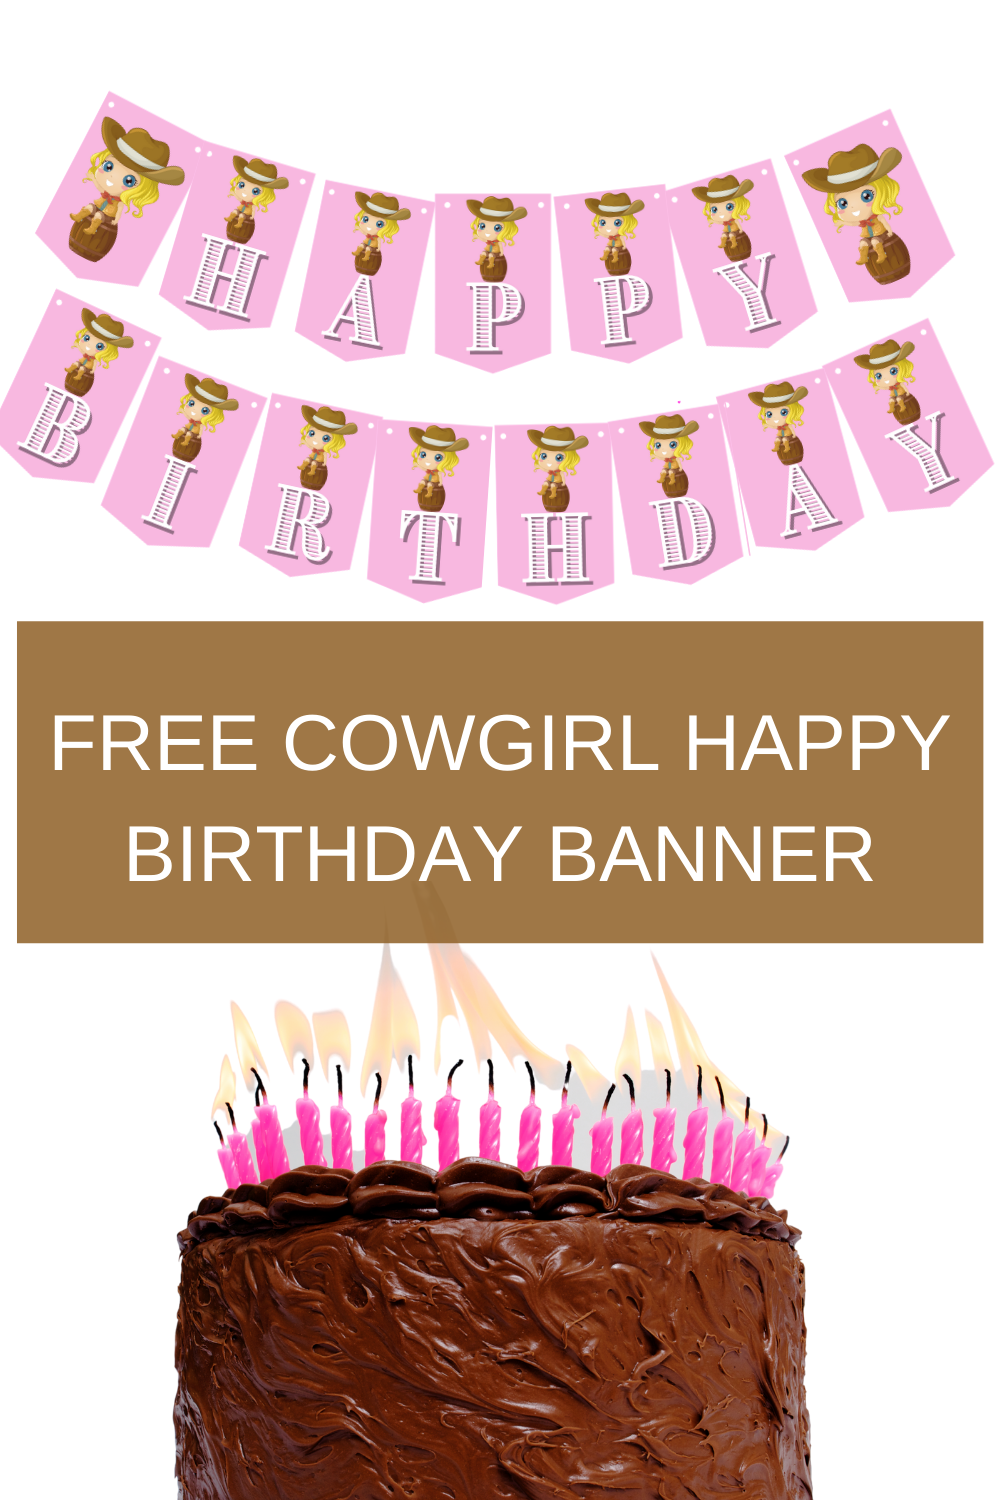 Pink cowgirl birthday decorations for a child's birthday